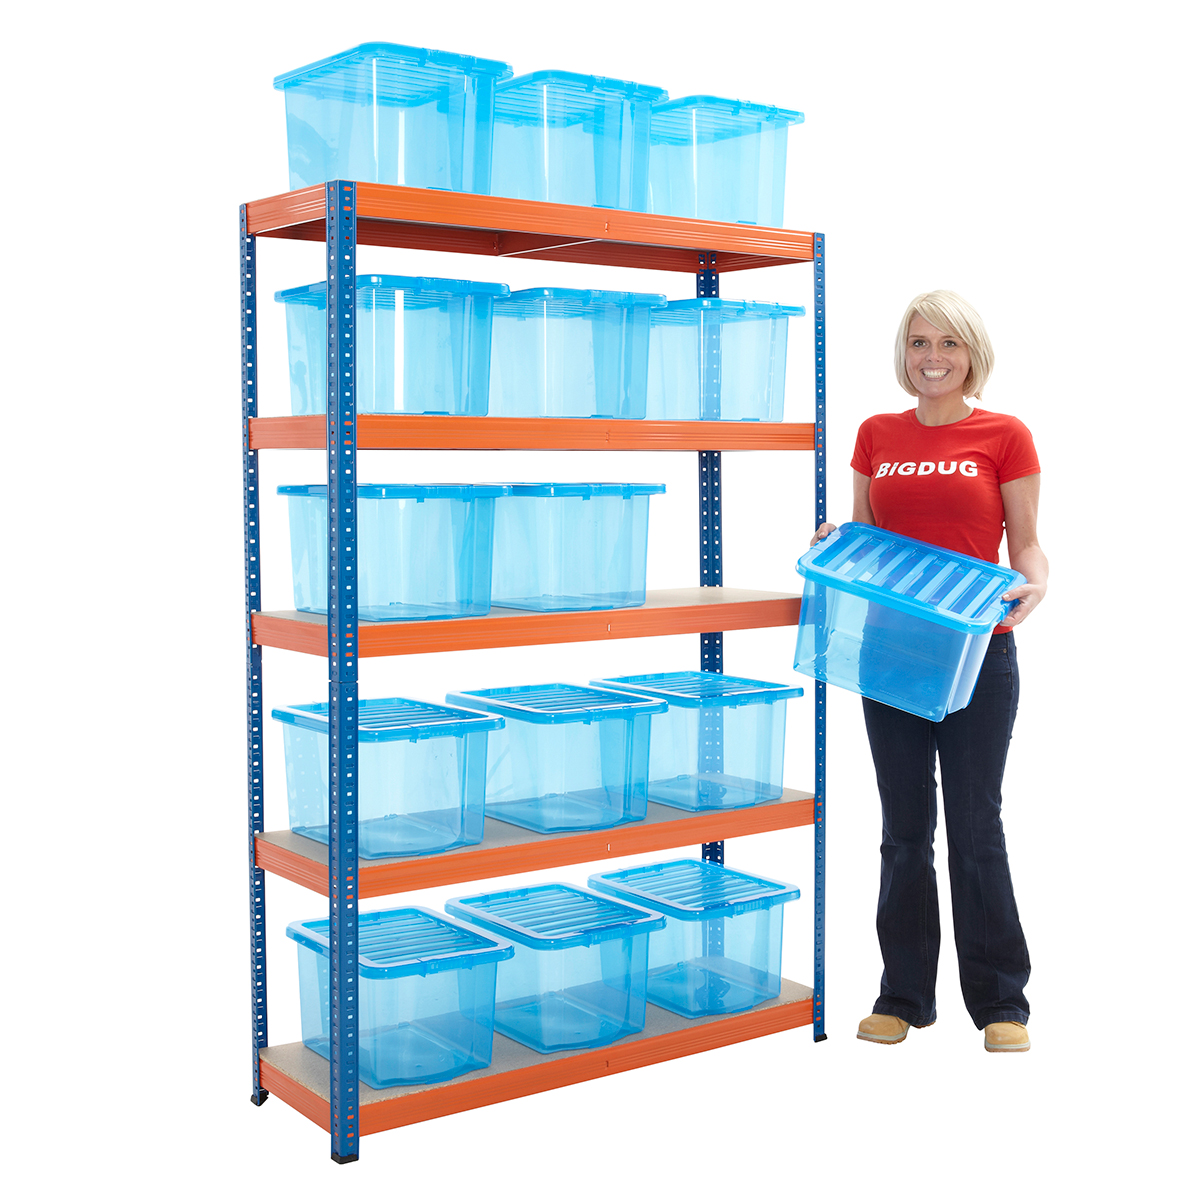 Garage Storage Boxes Boltless Garage Shelving Racking With 15 Storage Boxes